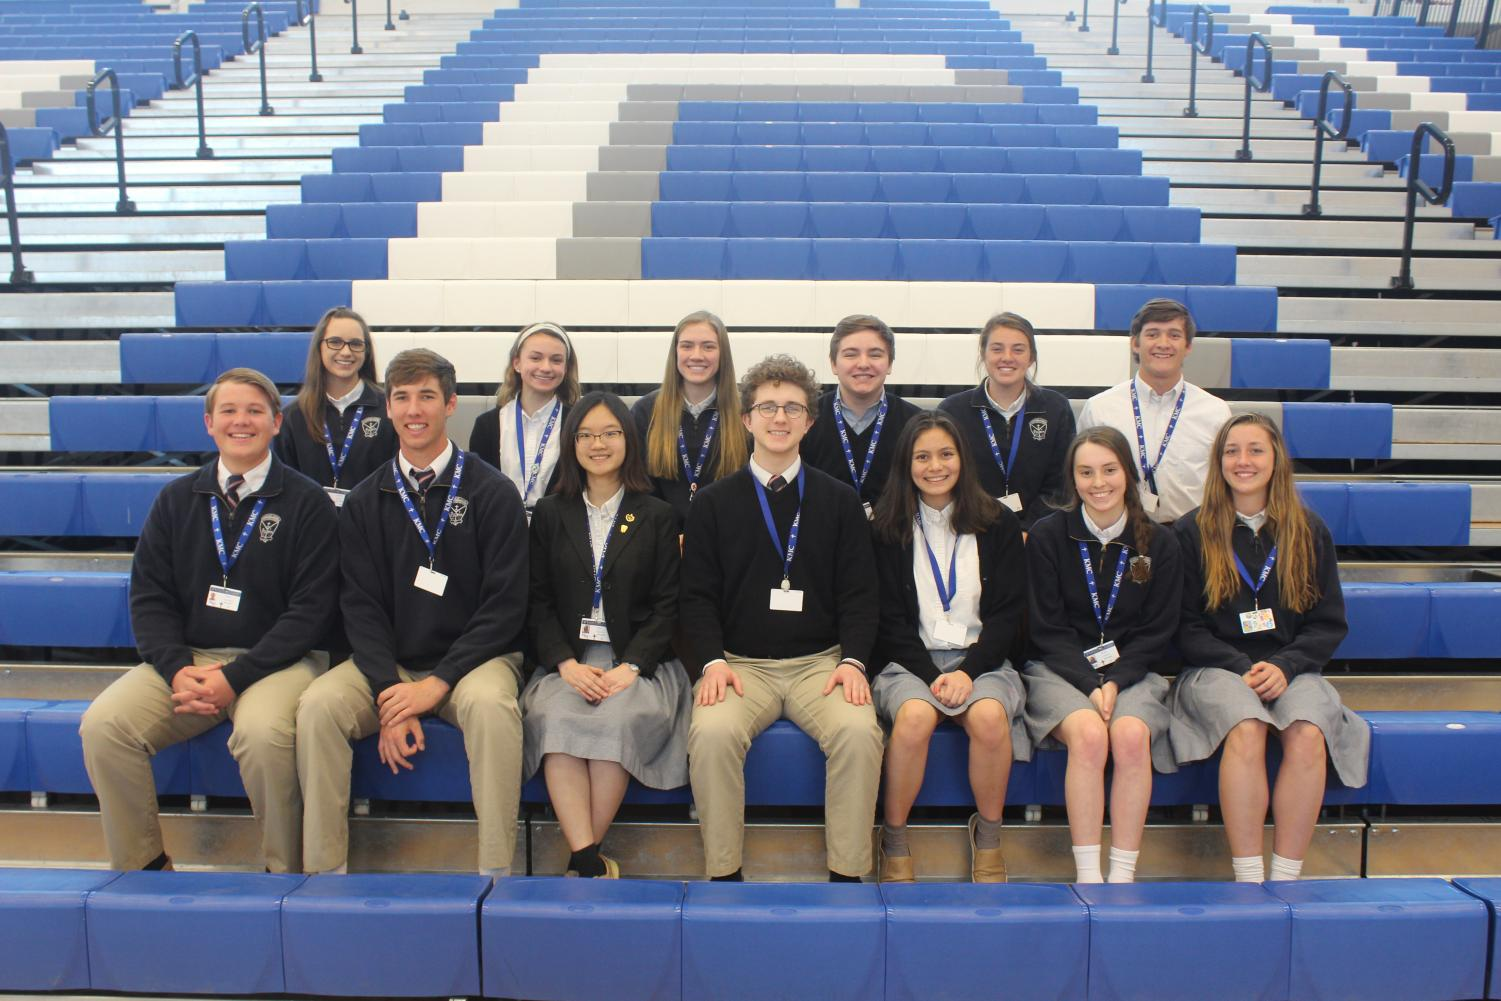 Posing for a photo, the House presidents and vice presidents are pictured. Back row: Natalie Knapp, Emme Bina, Adrienne Johnson, Brogan Wuestewald, Maggie Koster and Braden Barr. Front row: Thomas Clevenger, Scott Valentas, Lily Nguyen, Will Niehbur, Hannah Harpel, Isabel Ultzsch and Claudia Fury. Not pictured: Kathy Pham, Kylie Bitcon and Javier Martinez